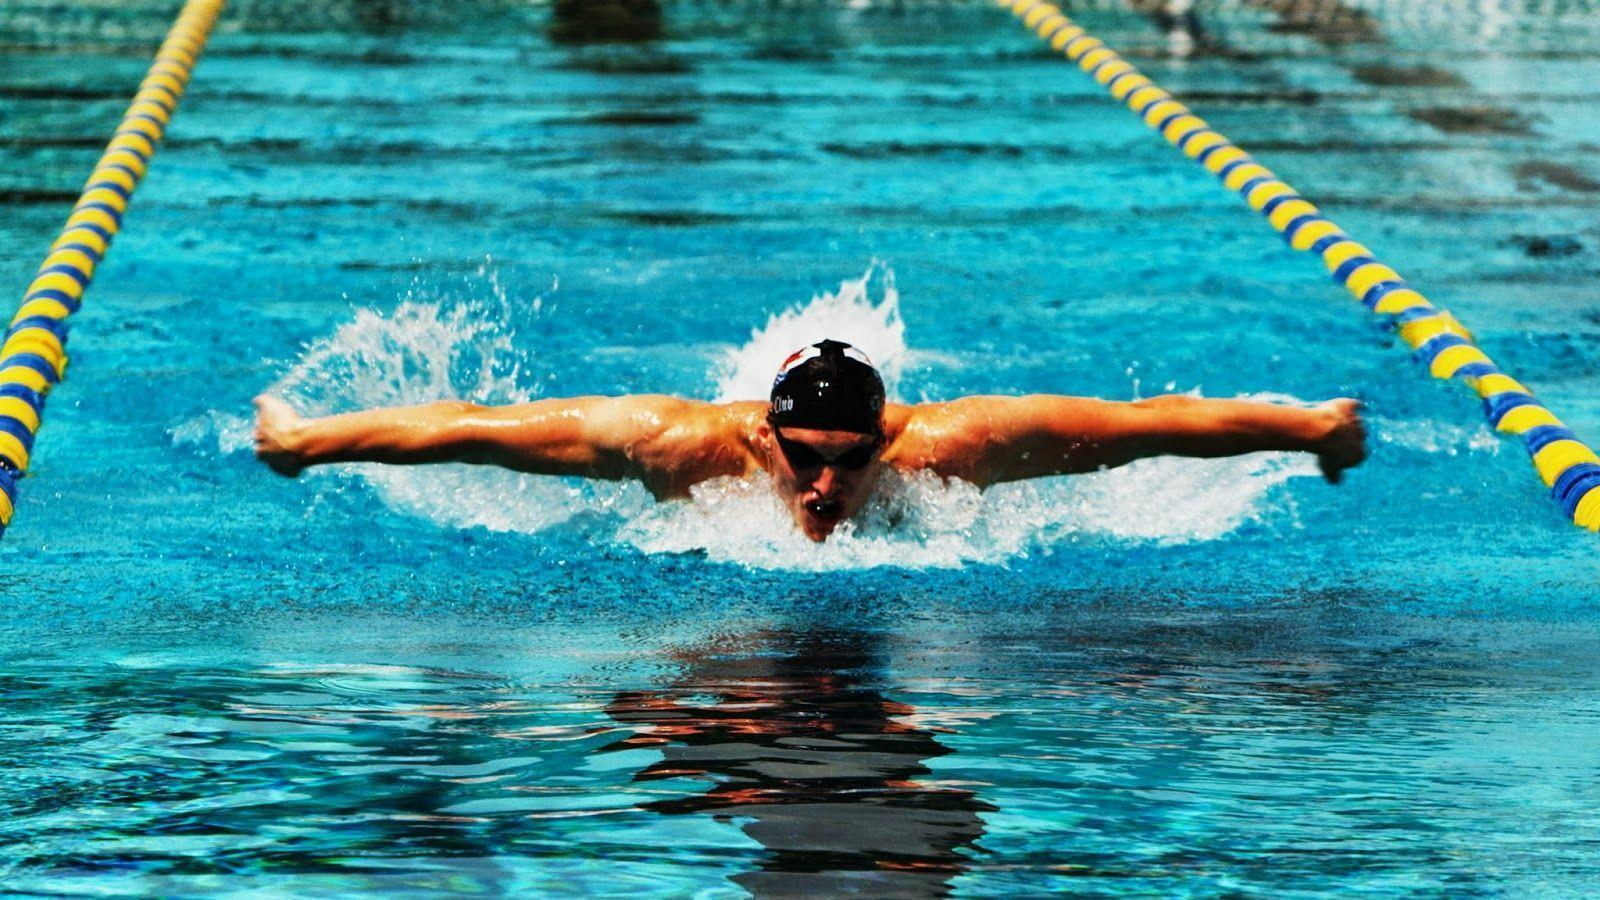 Swimming Wallpapers HD Backgrounds, Image, Pics, Photos Free